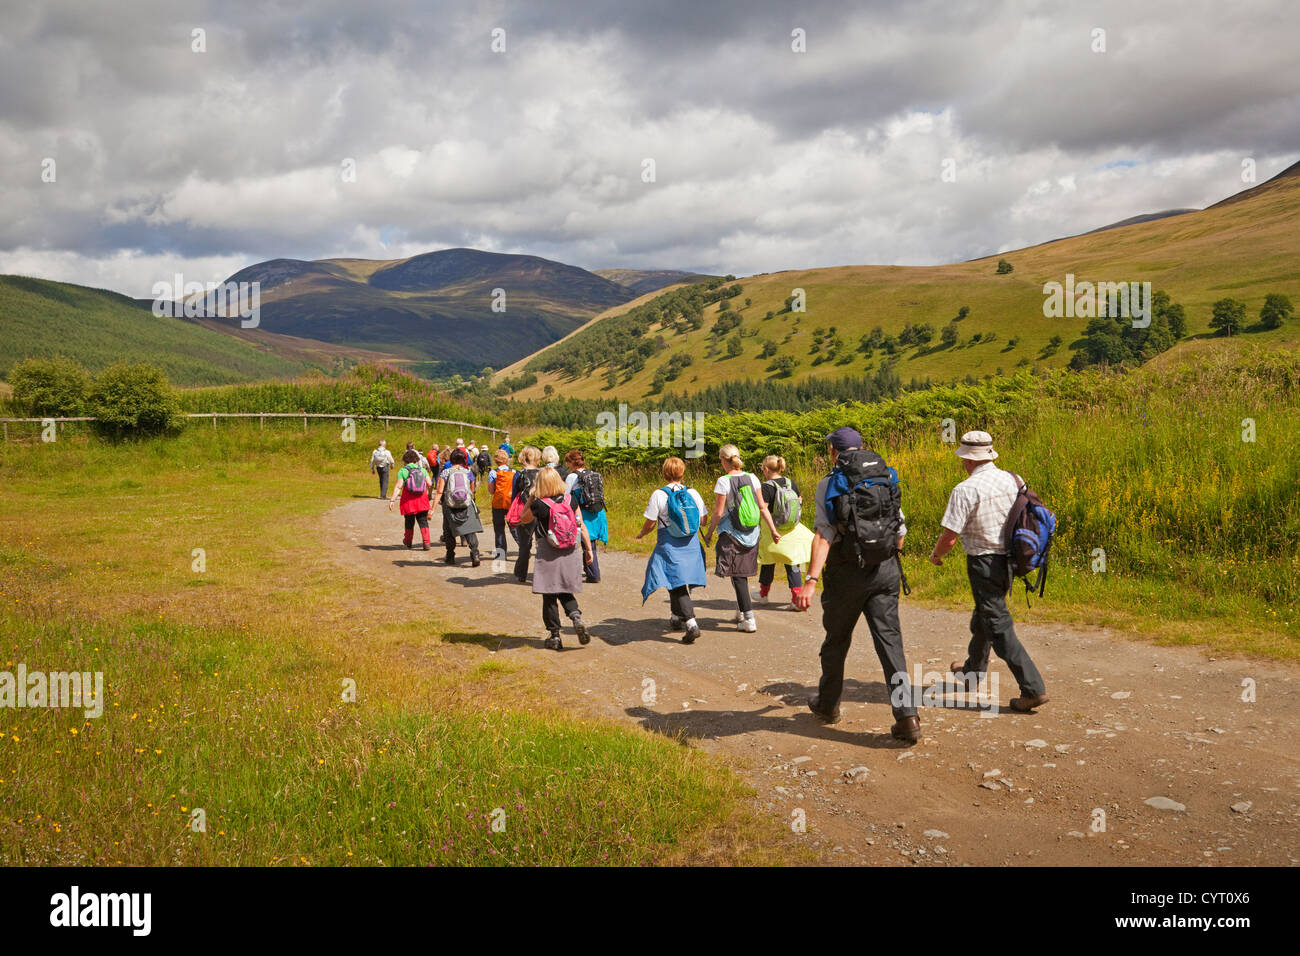 A Rambling Club in Glen Tilt, near Blair Atholl. Beinn a'Ghlo is in the background. - Stock Image